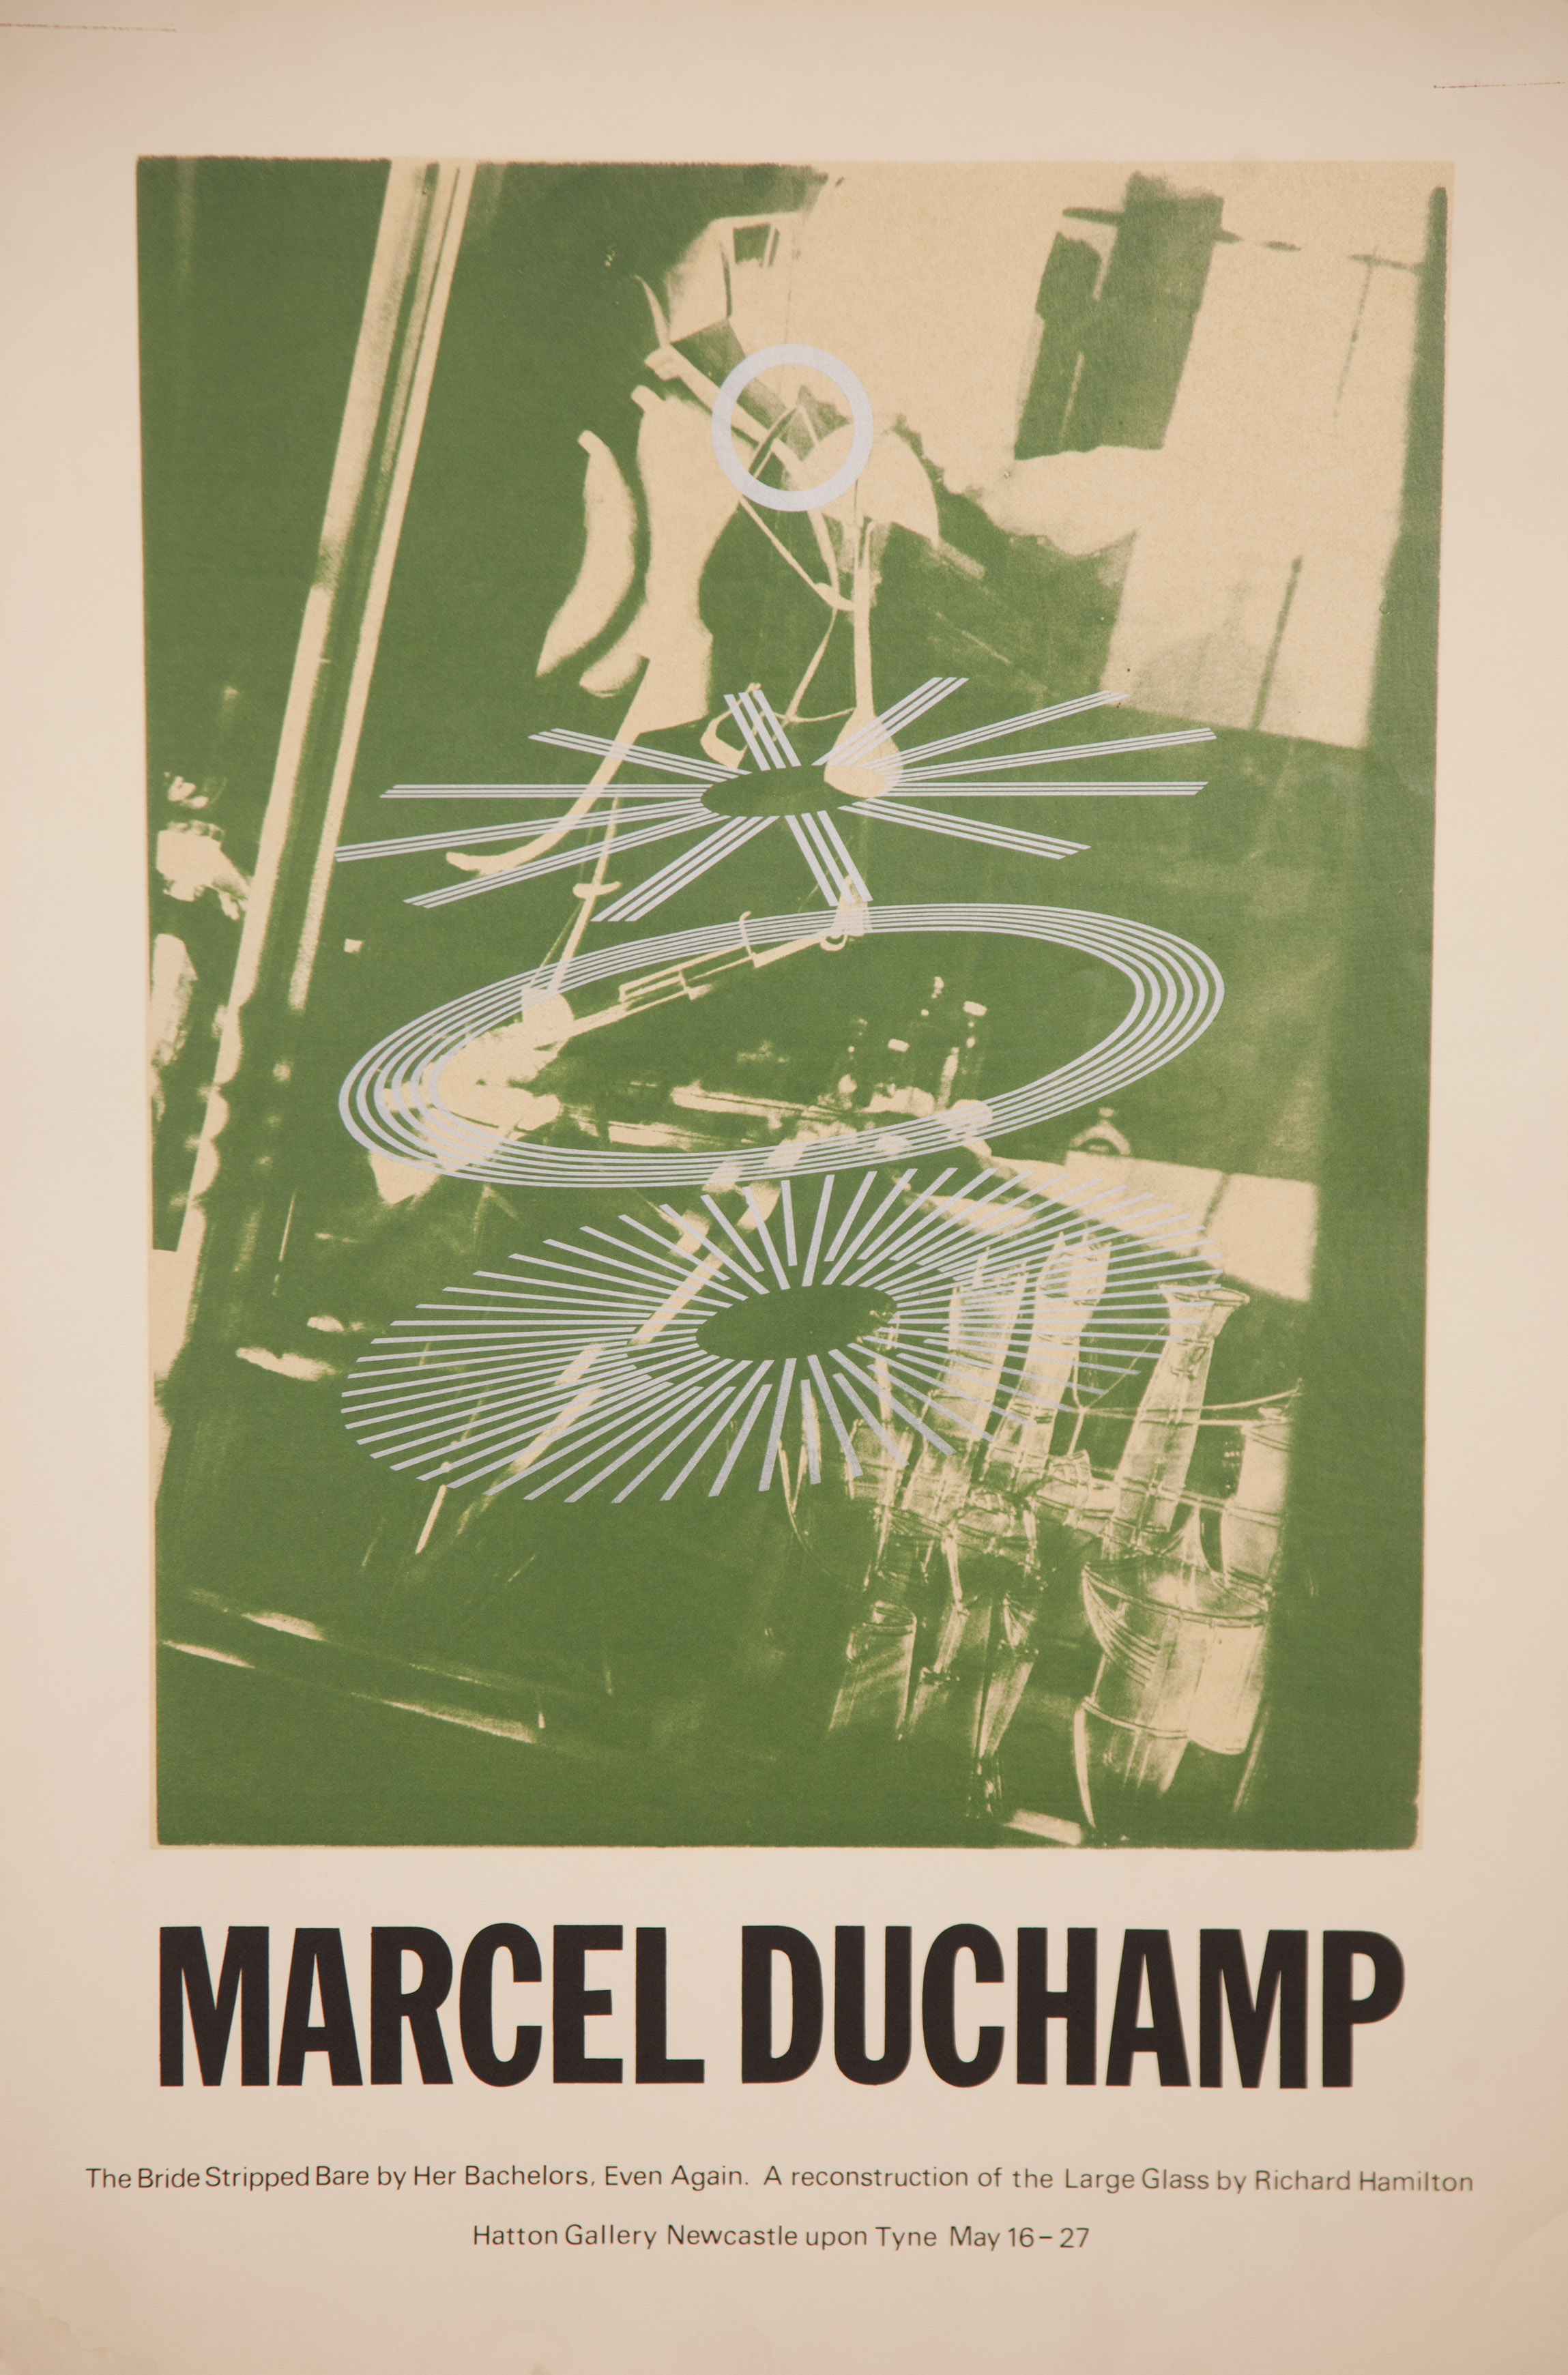 Richard Hamilton's poster for his recreation of Marcel Duchamp's 'Large Glass'